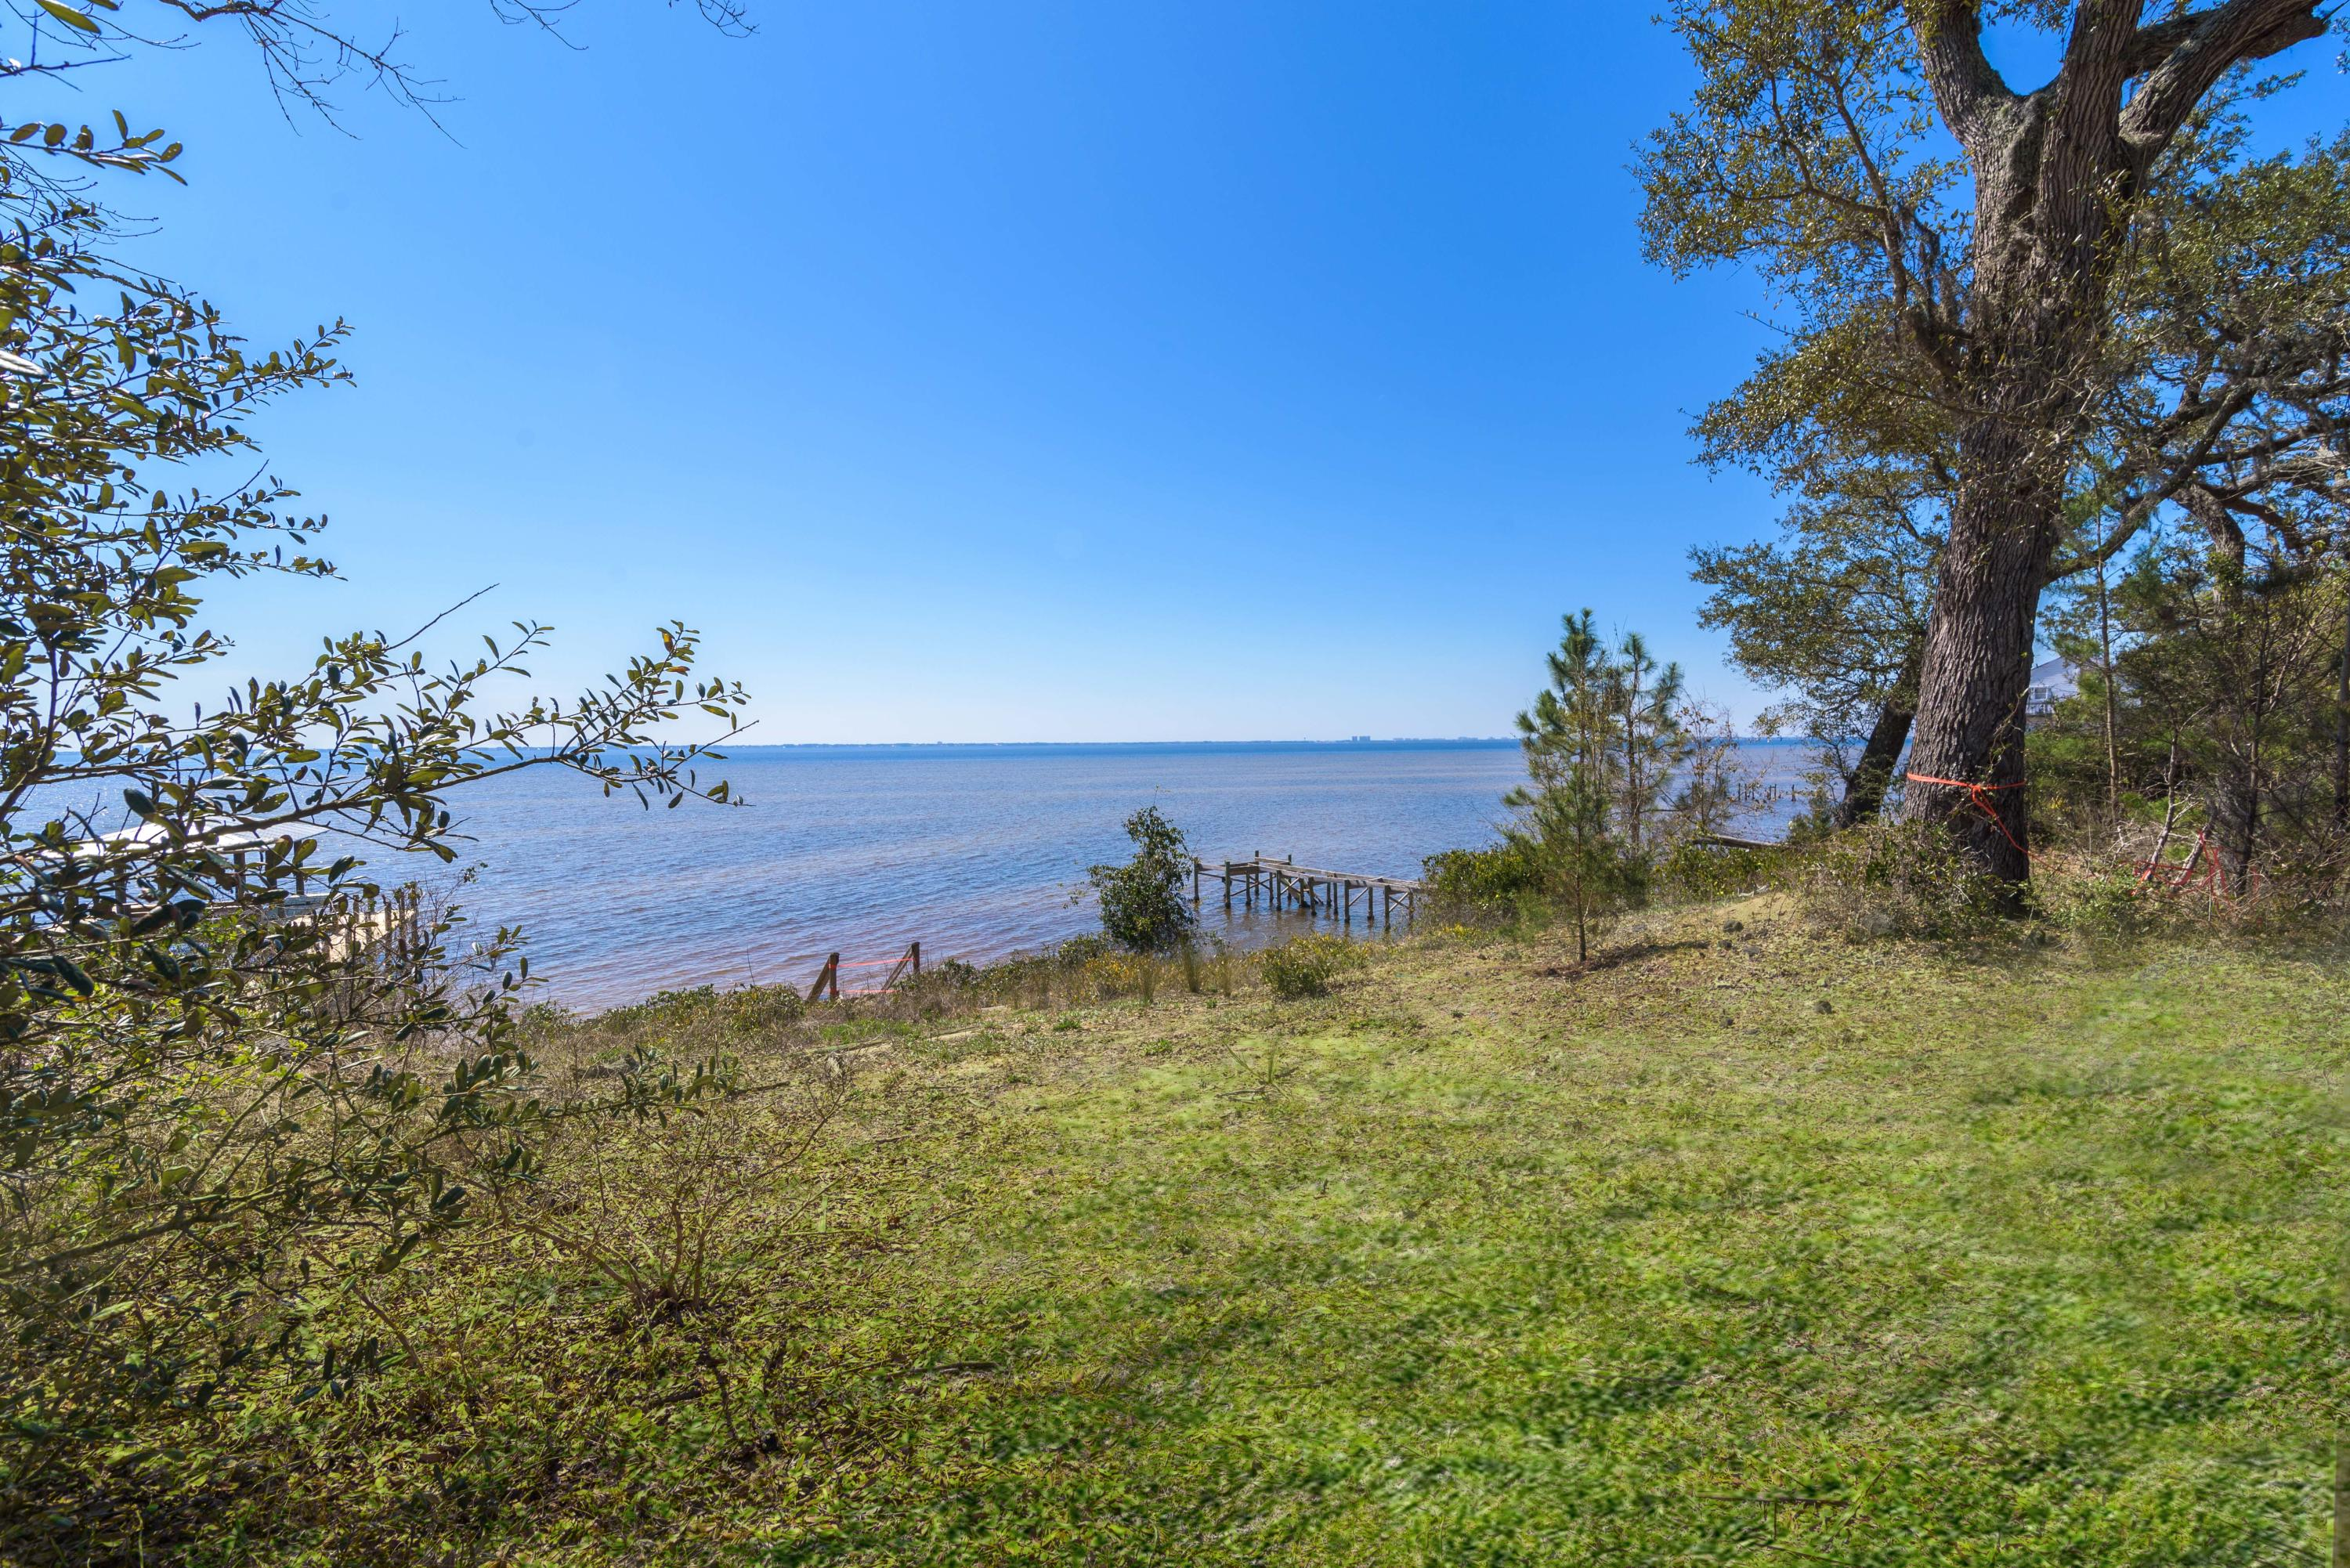 A   Chickasaw S/d Residential Land